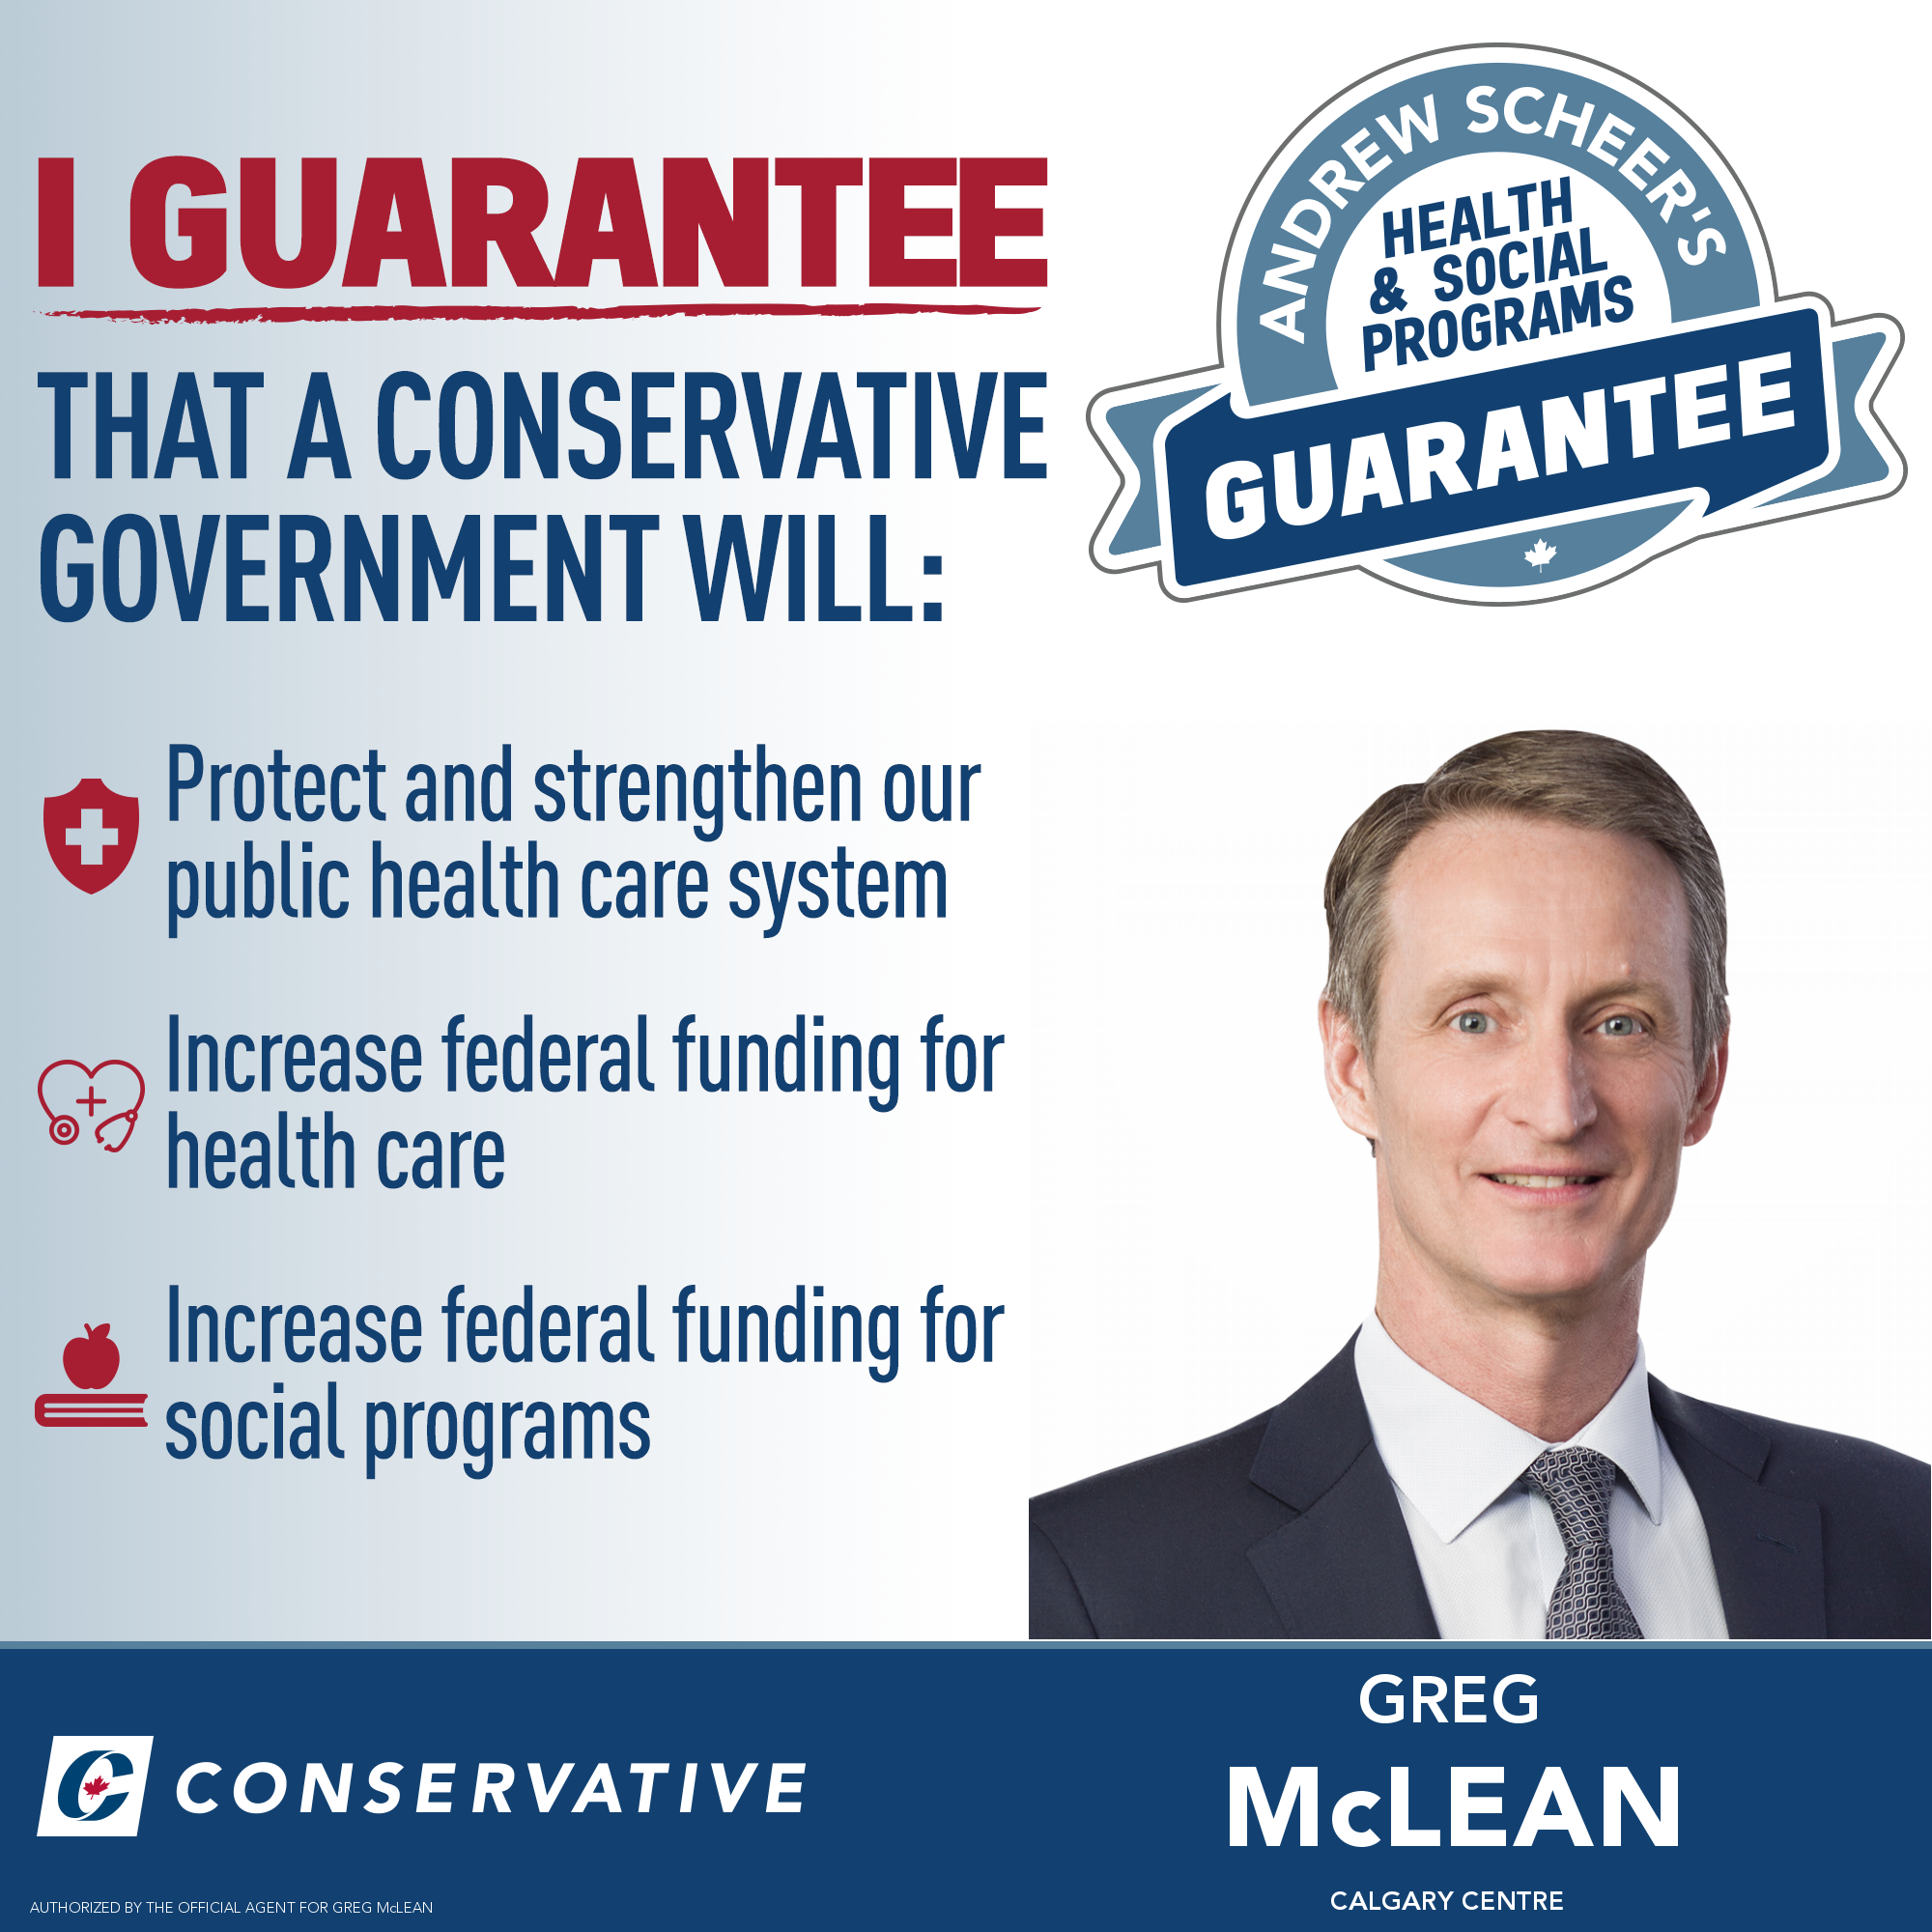 The Conservative Party has committed to increasing health care and social service funding by 3% year if elected. I expect our opponents will accuse us of planning to cut health care & social services. Here is the guarantee that we will maintain and increase transfers to provinces for those services. (BTW, in 2019-20, those transfers amount to $55 Billion!).